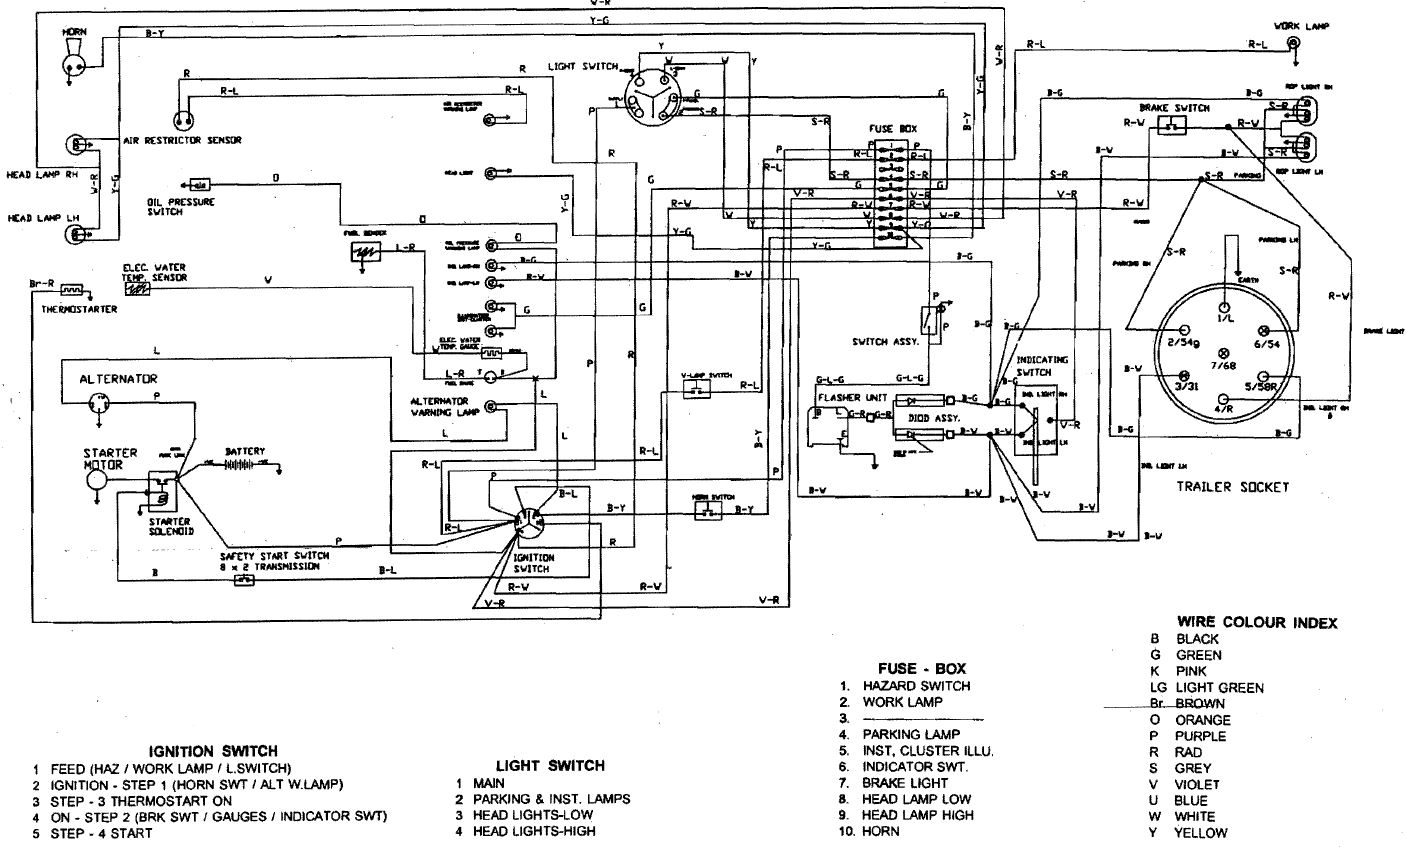 20158463319_b82d524c3d_o ignition switch wiring diagram PTO Switch Wiring Diagram for Massey Furgeson at mifinder.co